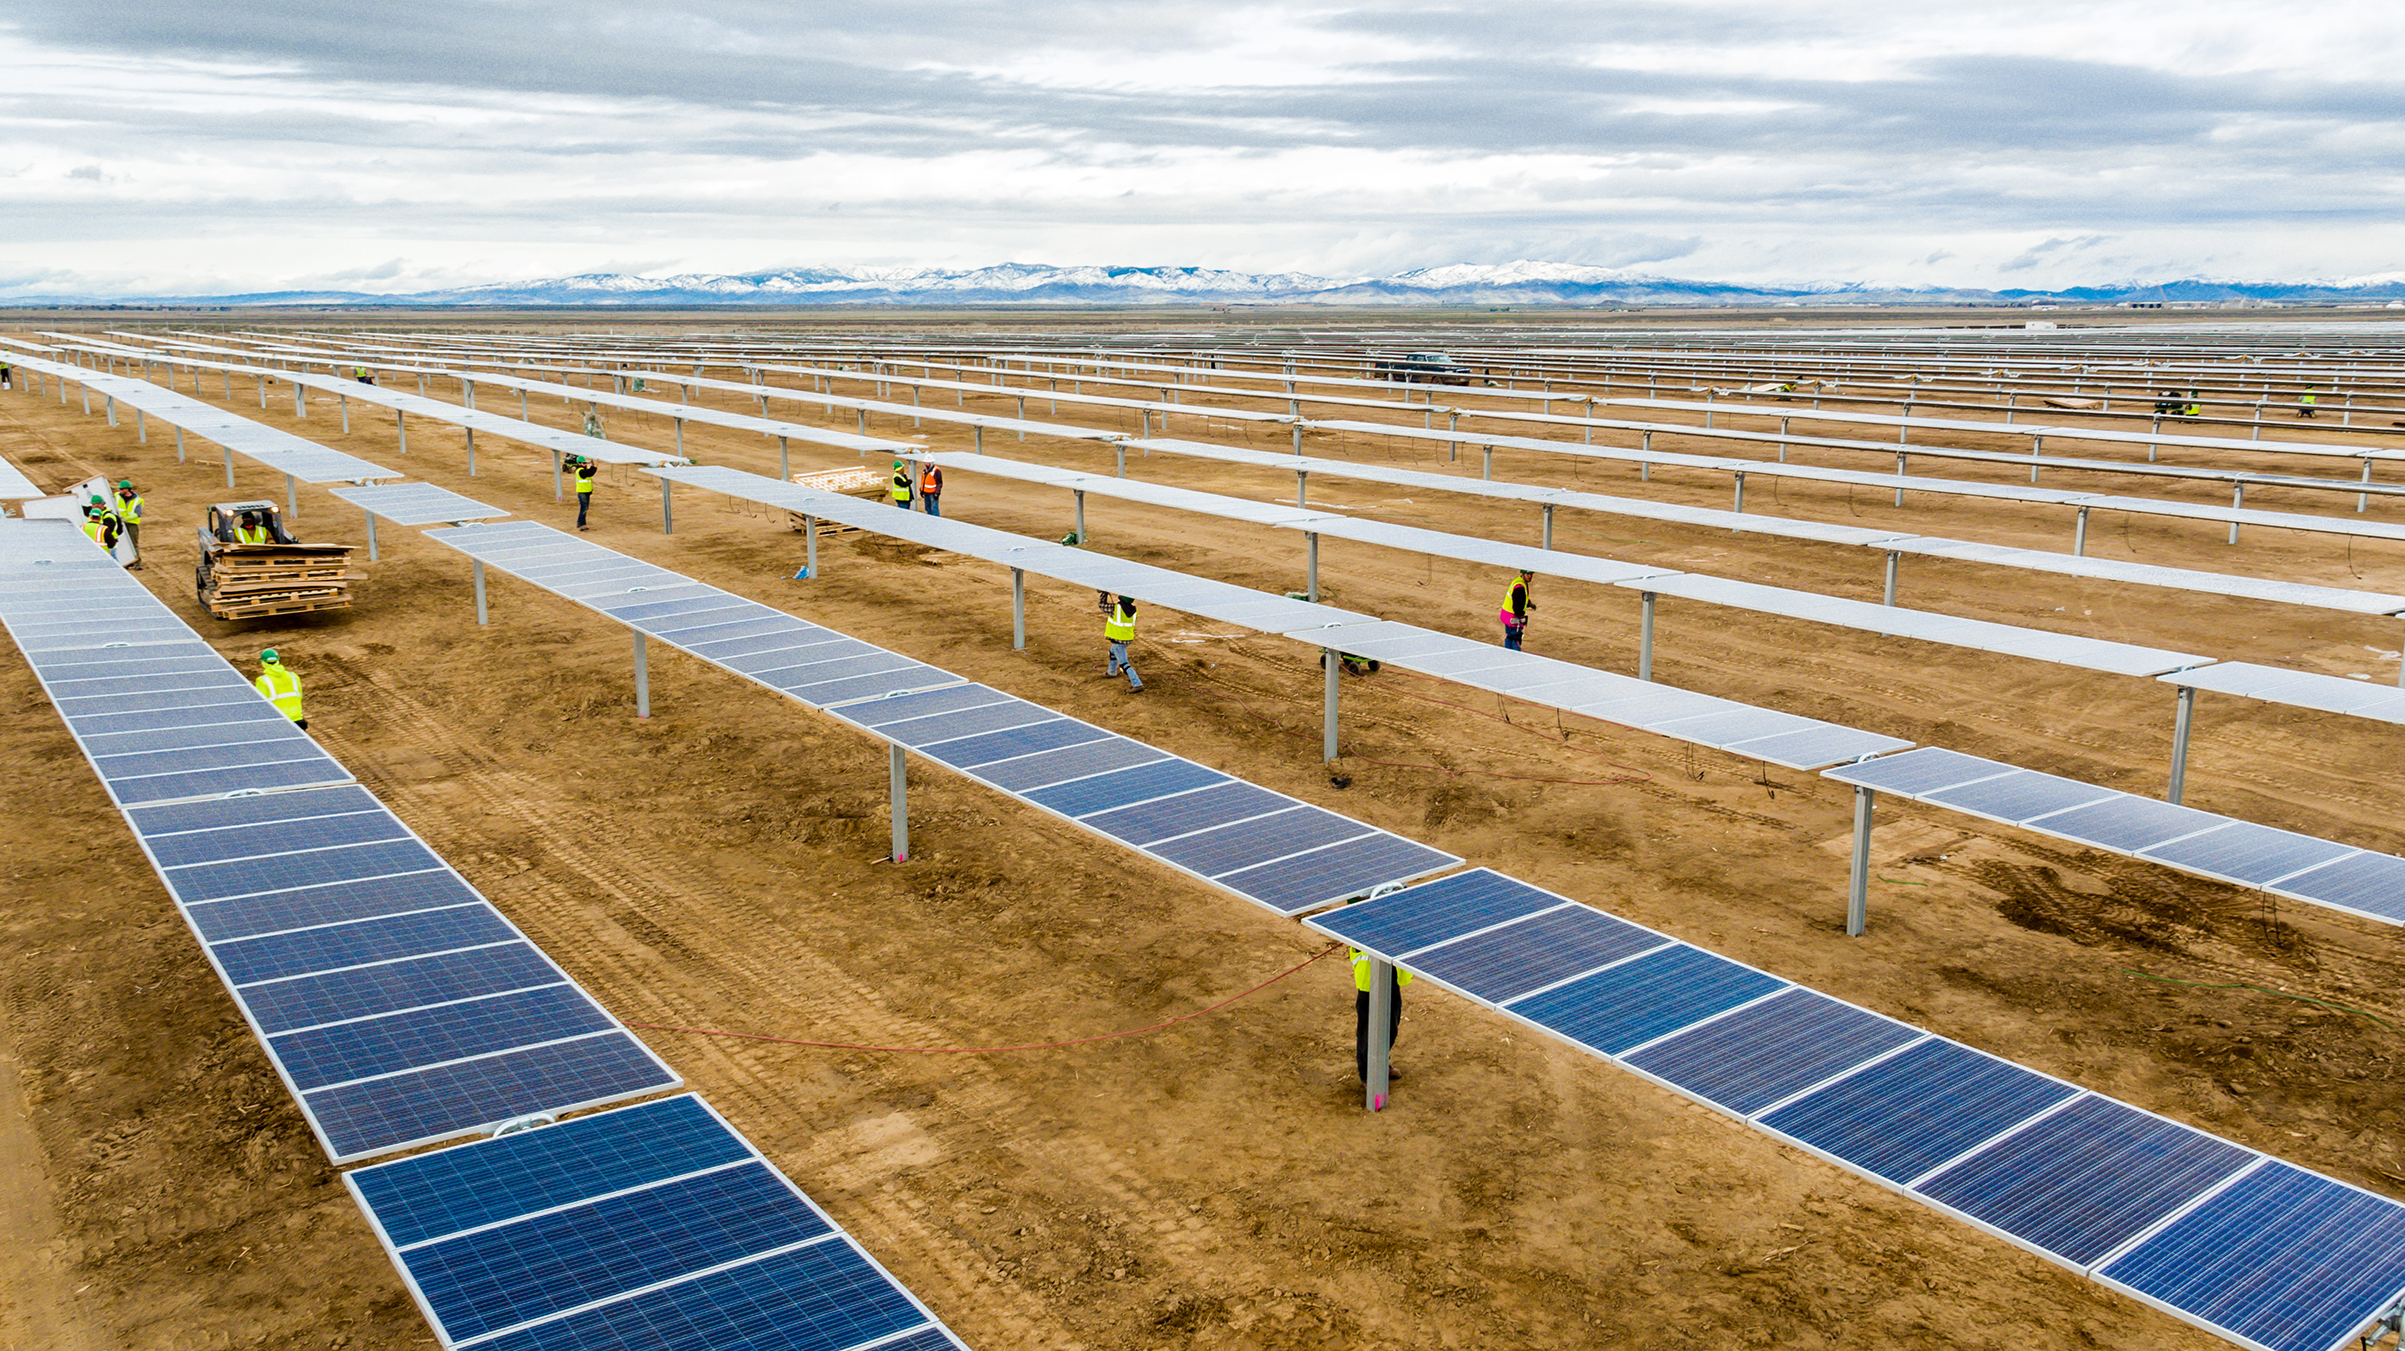 DEPCOM construction crews assemble solar modules during the construction of the 55 megawatt Idaho Solar plant.